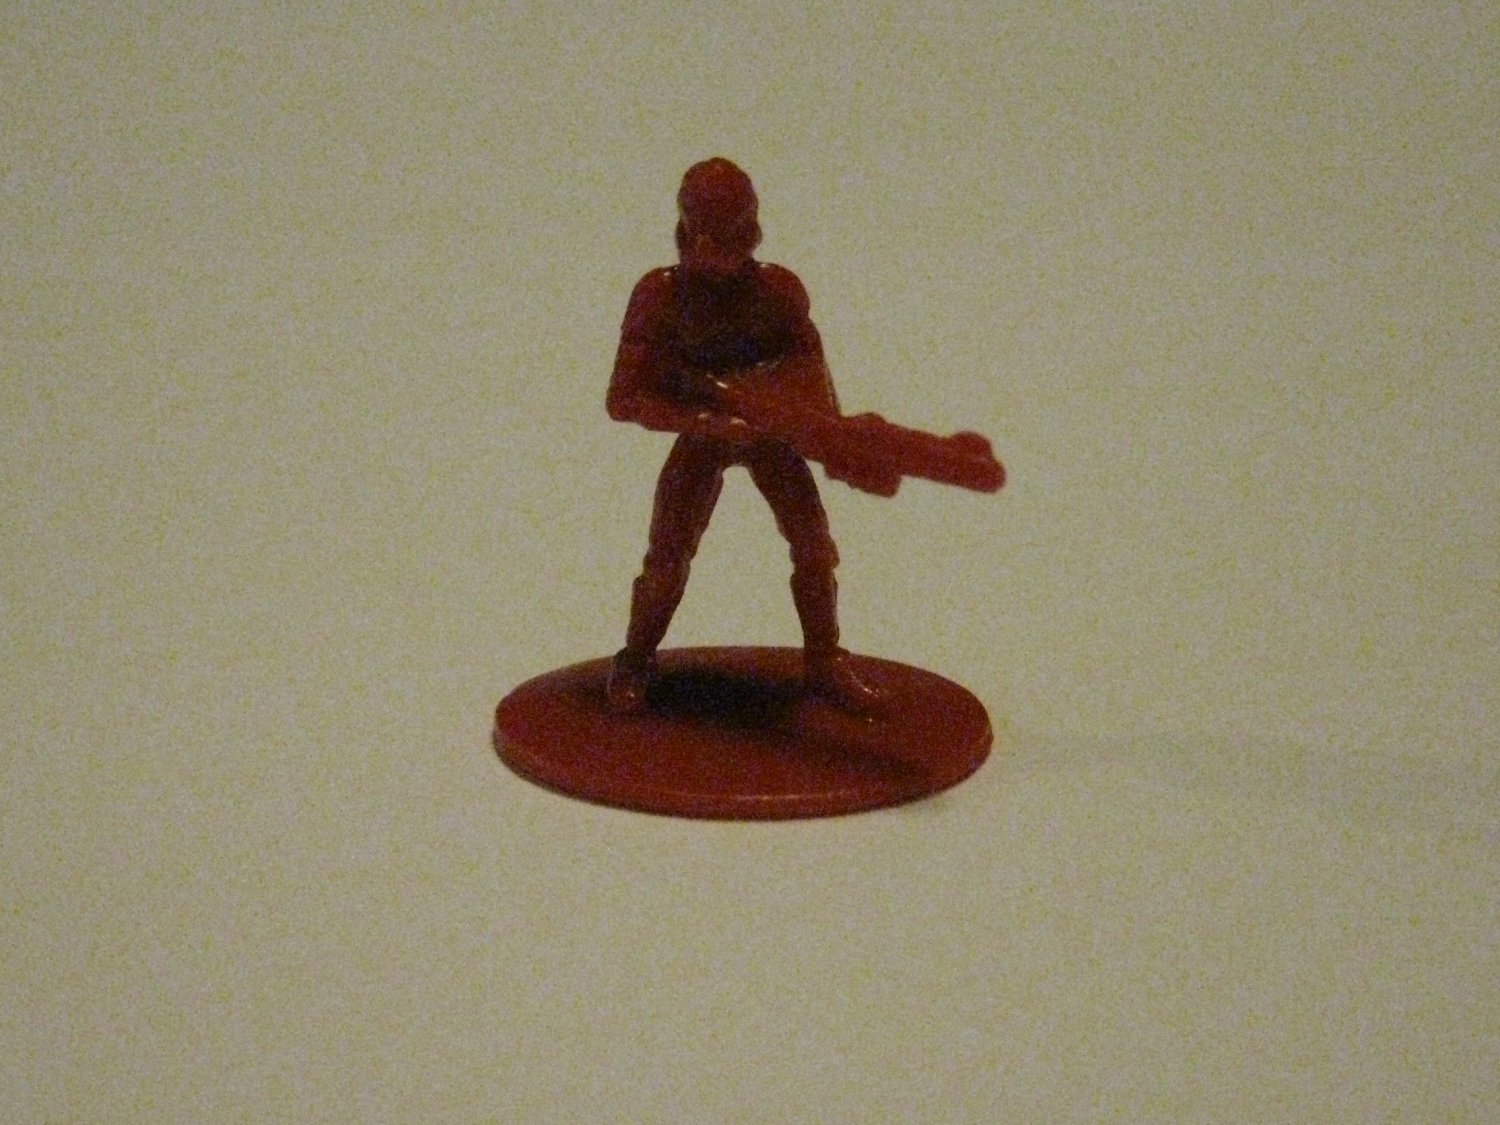 2005 Risk: Star Wars The Clone Wars Board Game Piece: single Red Clone Trooper Player Pawn